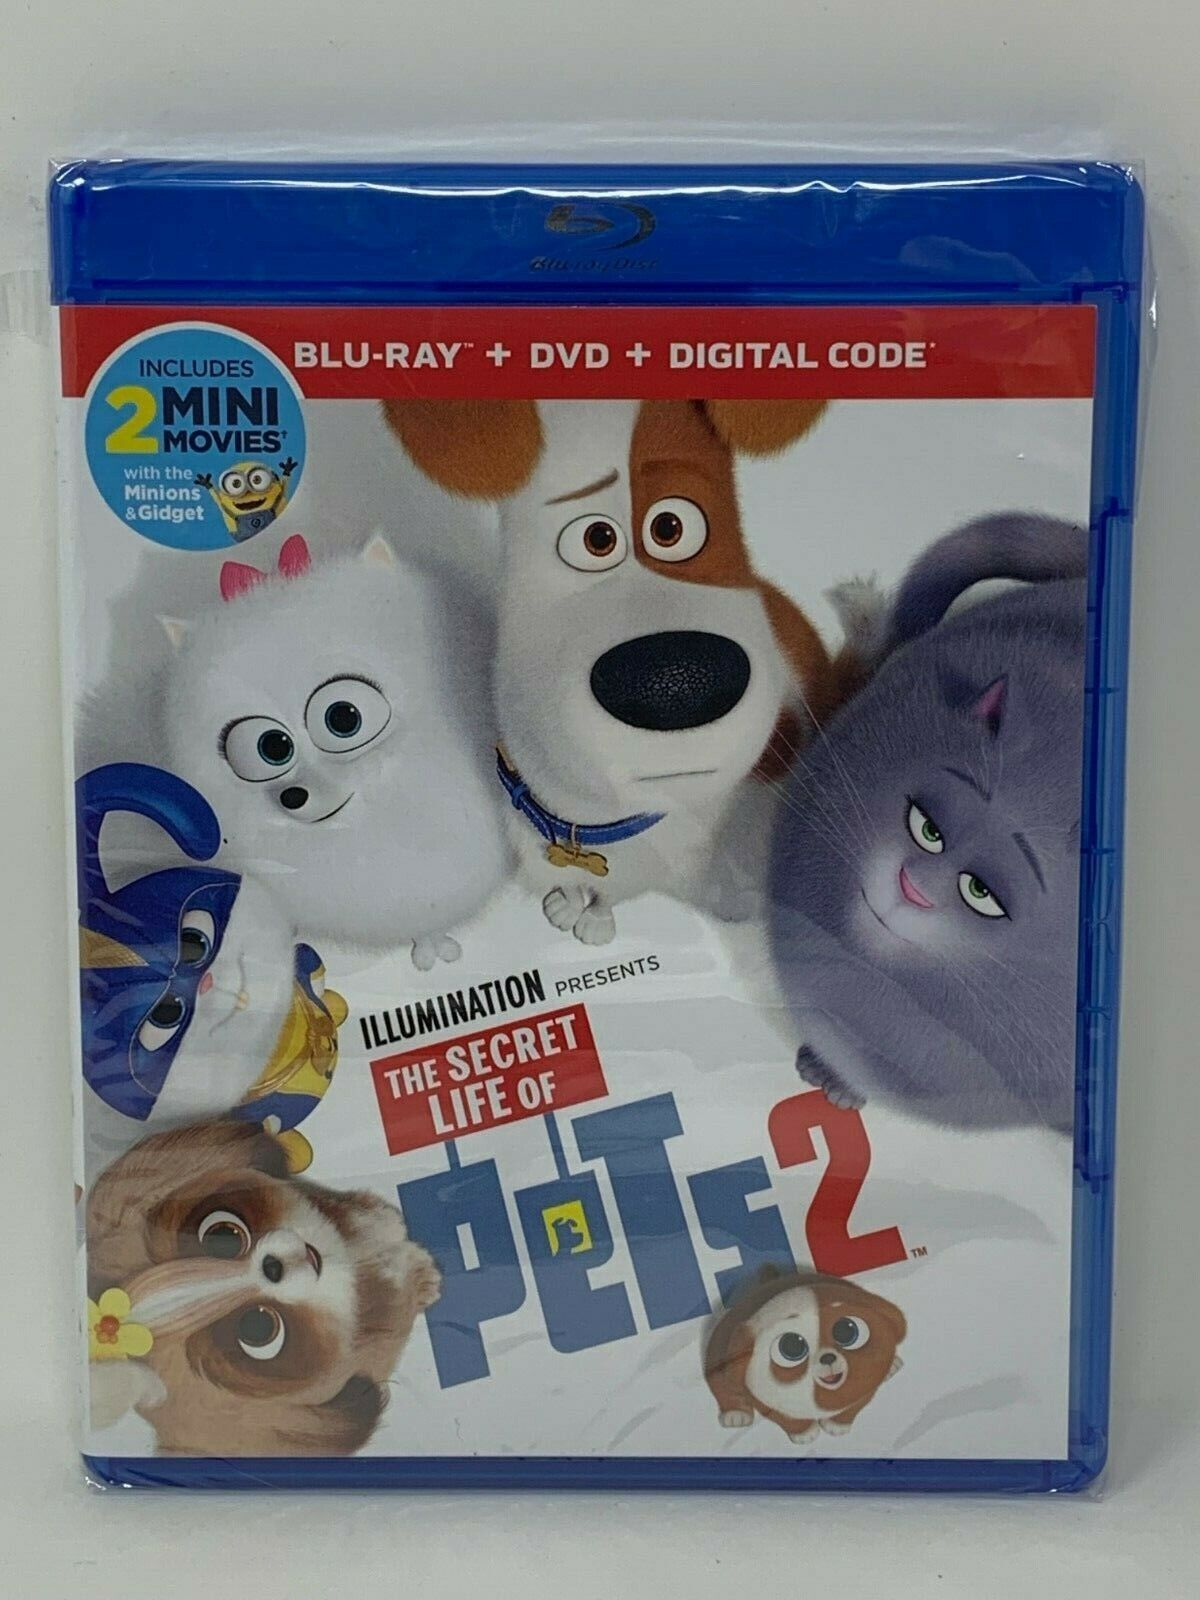 Free Xxx Anime Movies the secret life of pets 2 (2019) blu-ray + dvd buy 5 get 1 free! $3 ship  once!